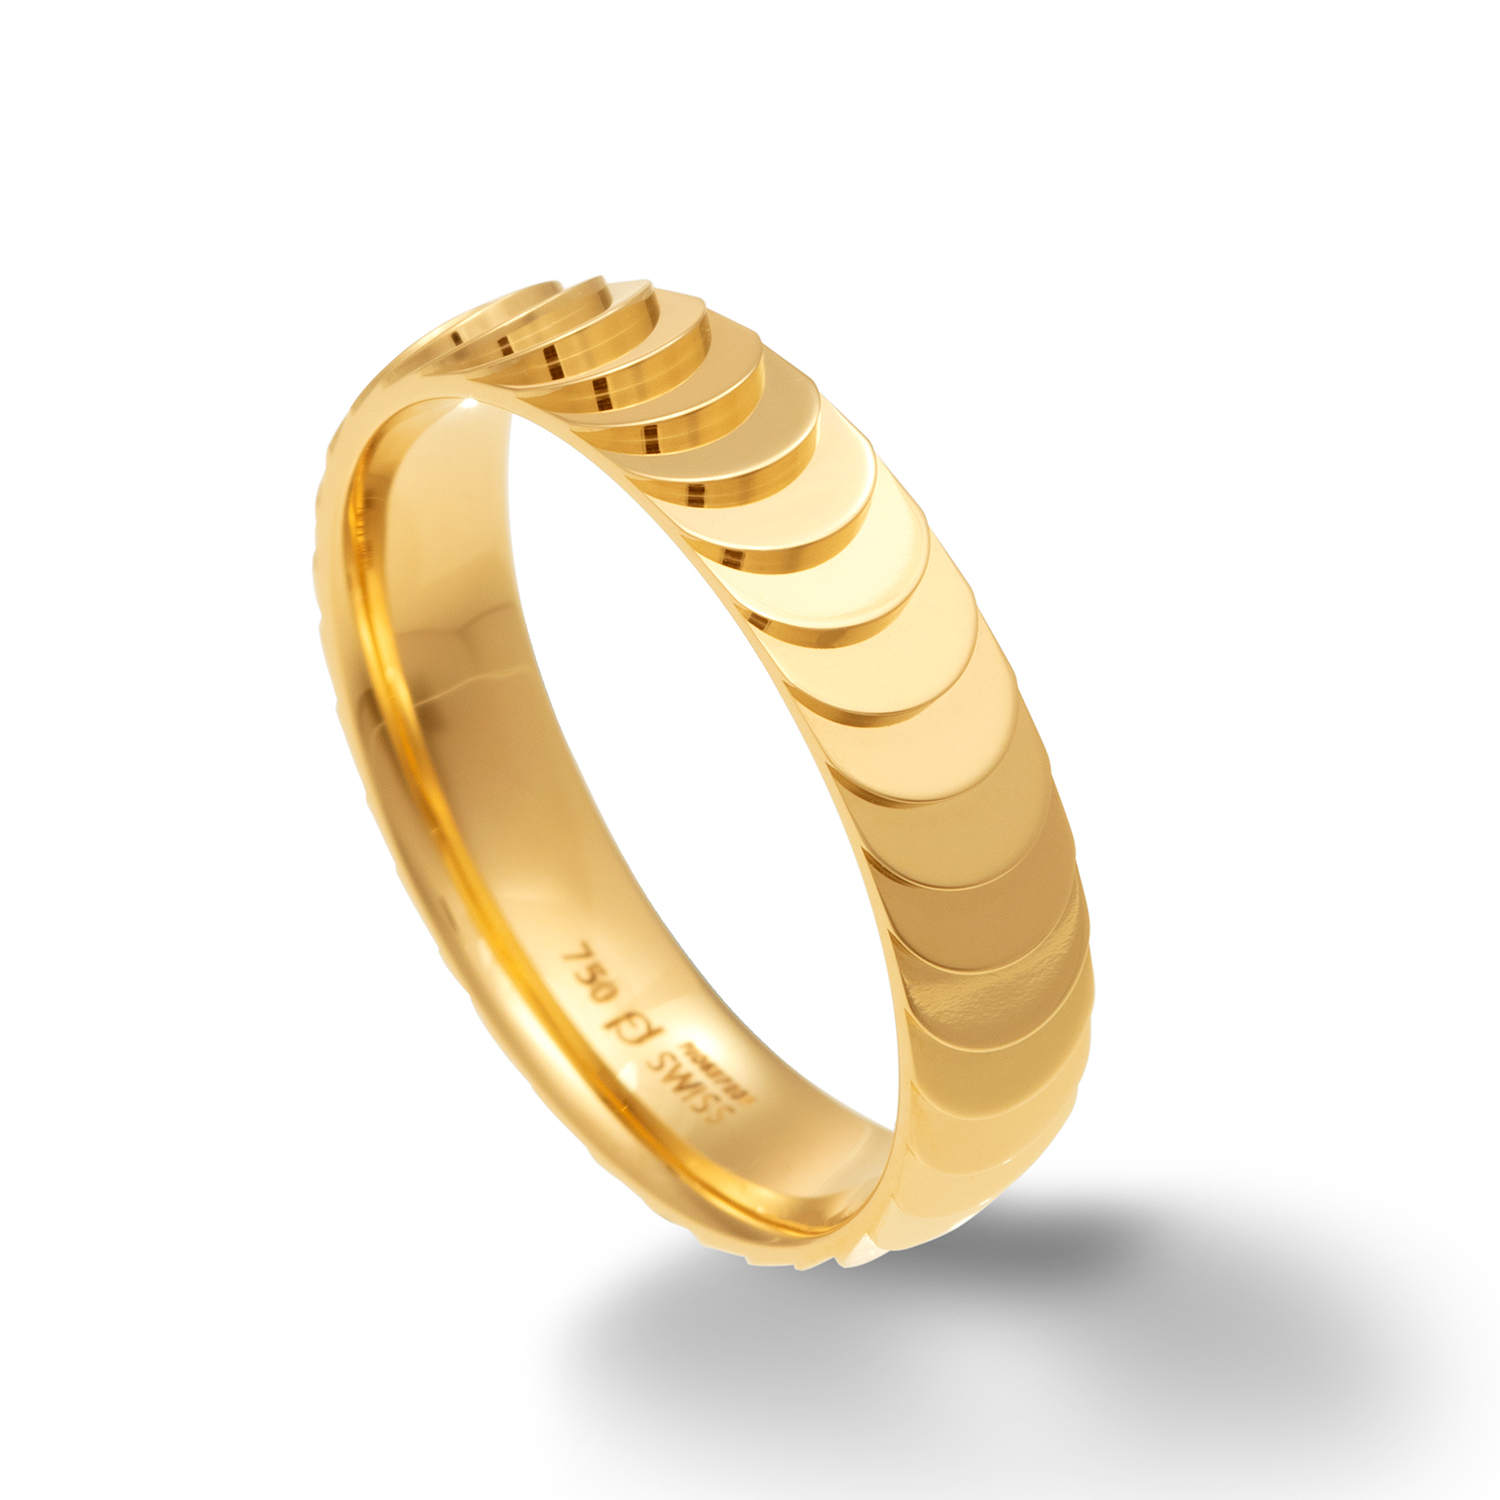 men's ring, wedding bands, wedding rings, gold, platinum, jewellery, jewelry